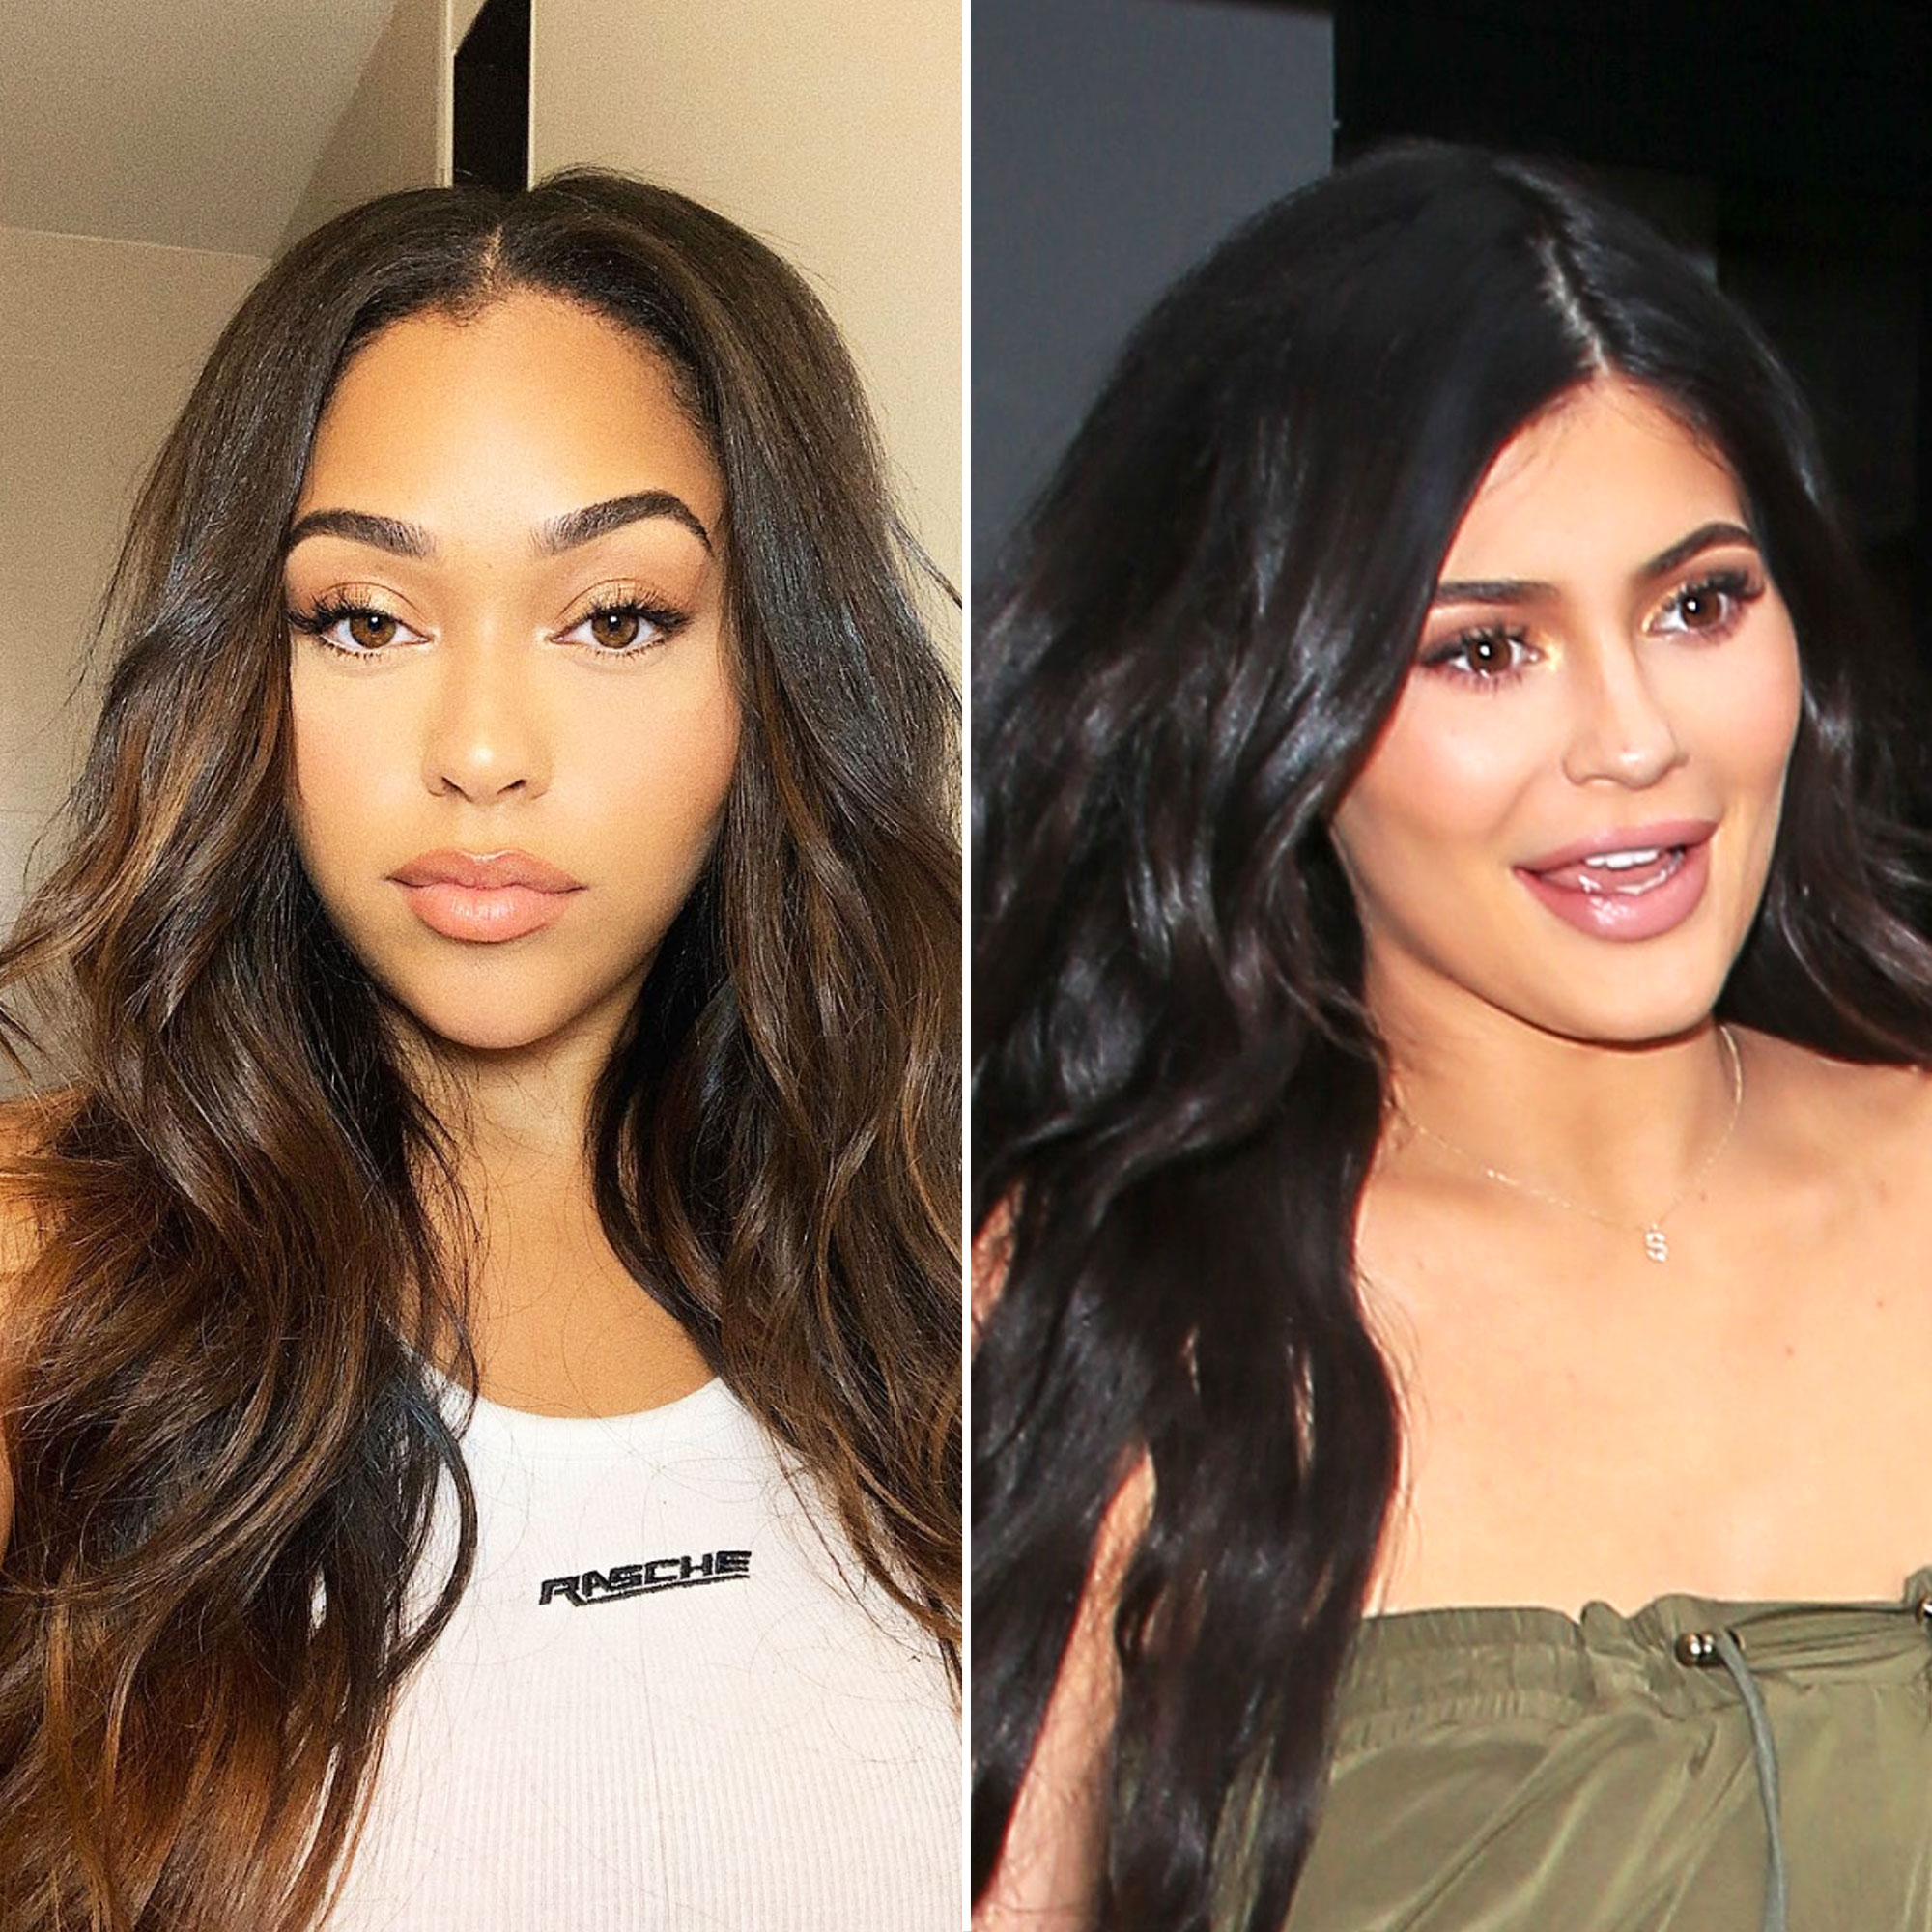 6 Times Jordyn Woods Channeled Kylie Jenner's Hair - The Kardashian-Jenner clan is all about the hair change, but Kylie and her sisters return to long and luscious waves time and time again. Woods apparently got the memo with this February 2018 selfie.